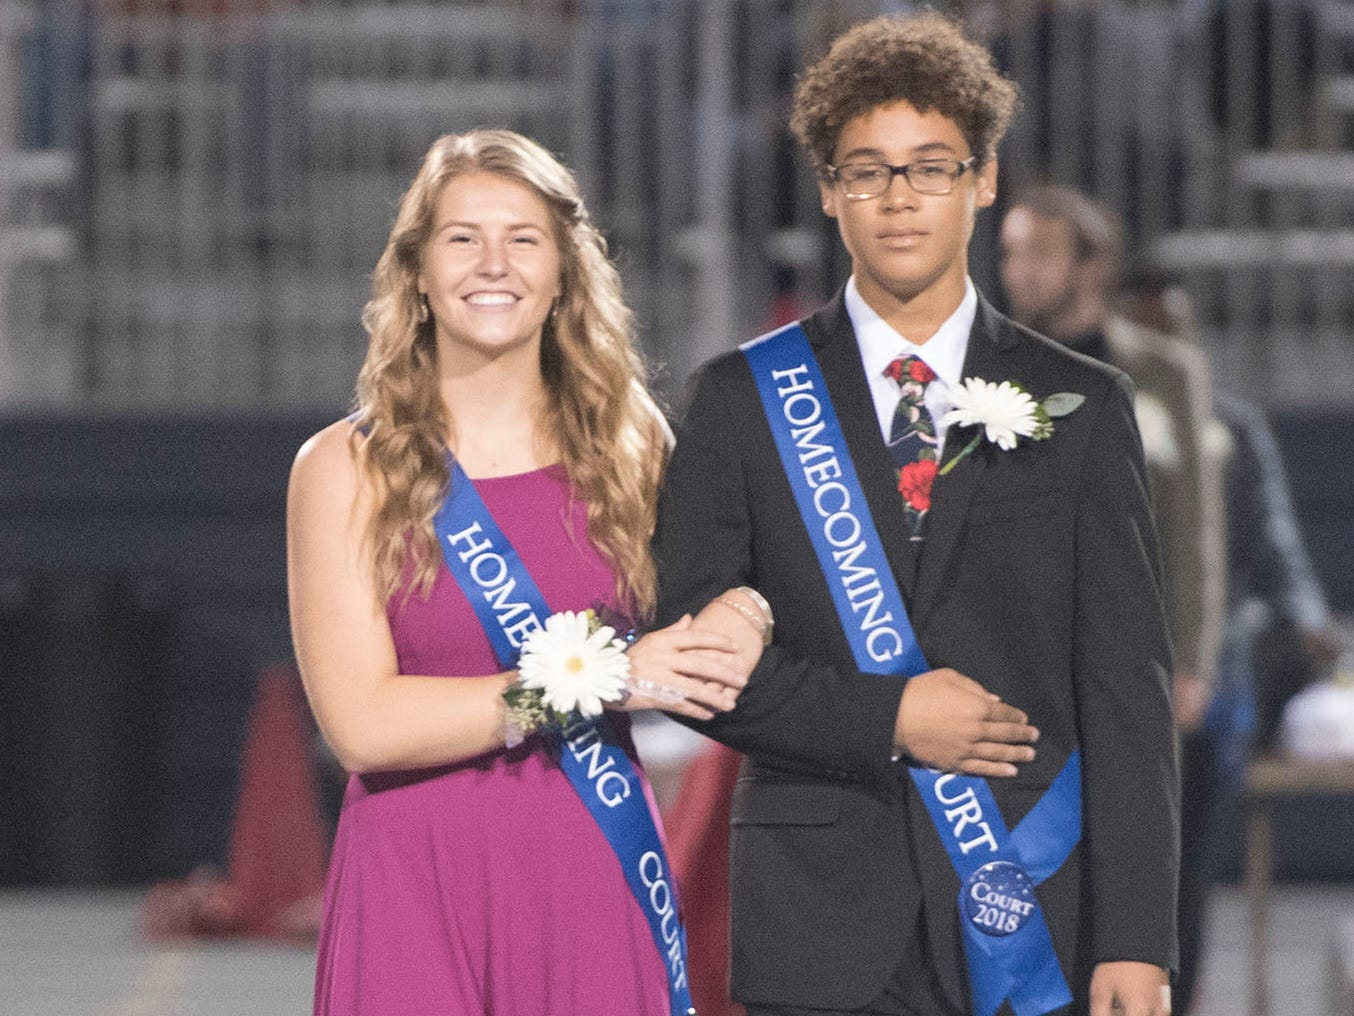 The homecoming court made an appearance at halftime. Chambersburg Trojans are 5-1 after a homecoming victory over Cumberland Valley 28-14 in PIAA football on Friday, Sept. 28, 2018.